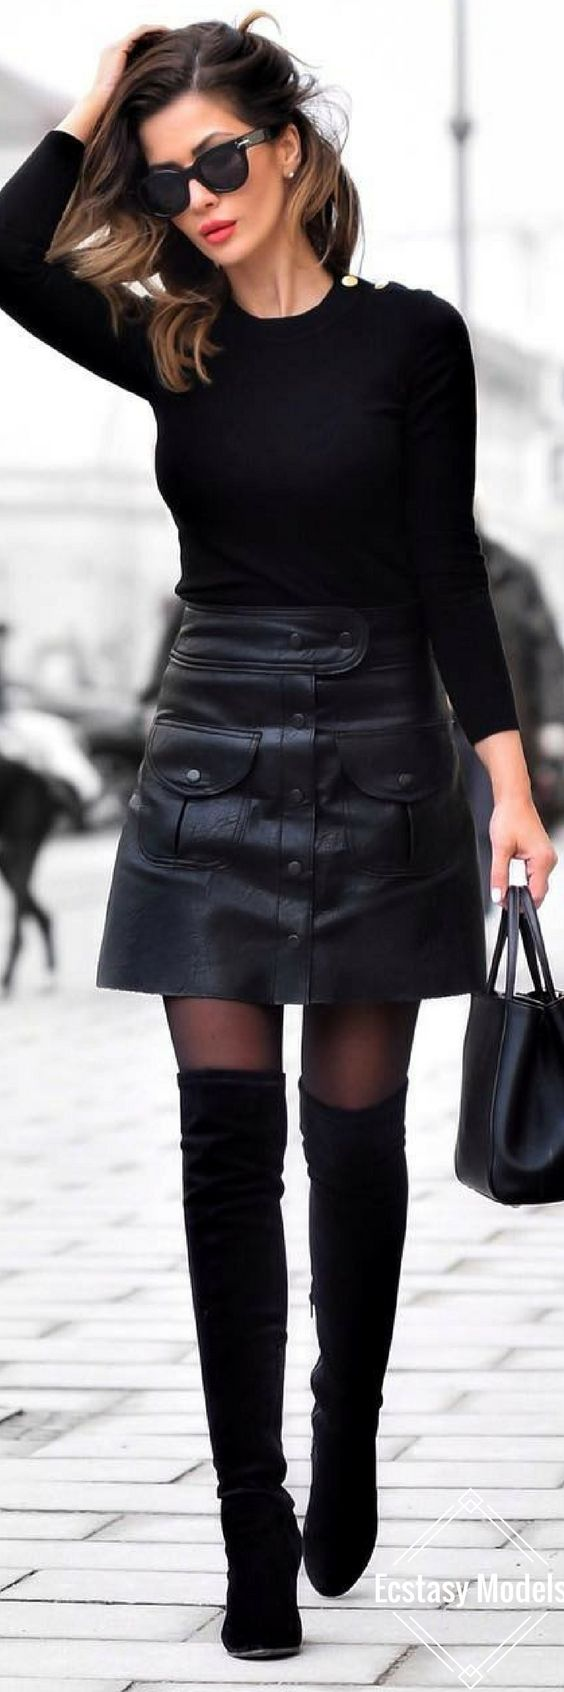 All Black Everything // Fashion Look by Short Stories & Skirts